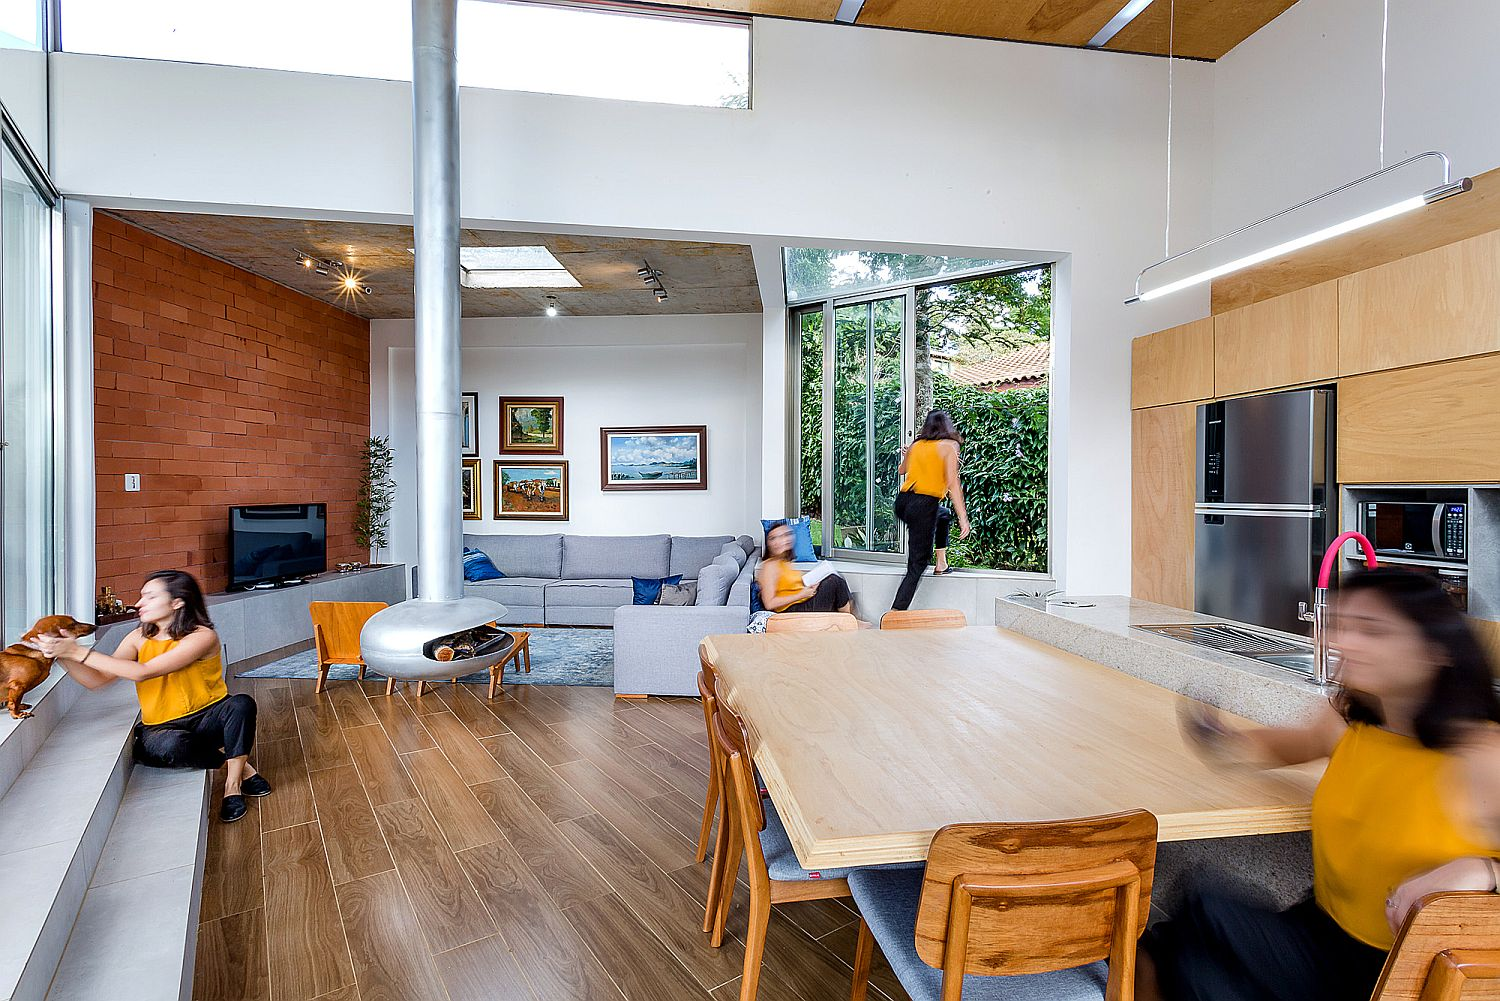 Living area of the house opens up into the spacious balcony at the entrance